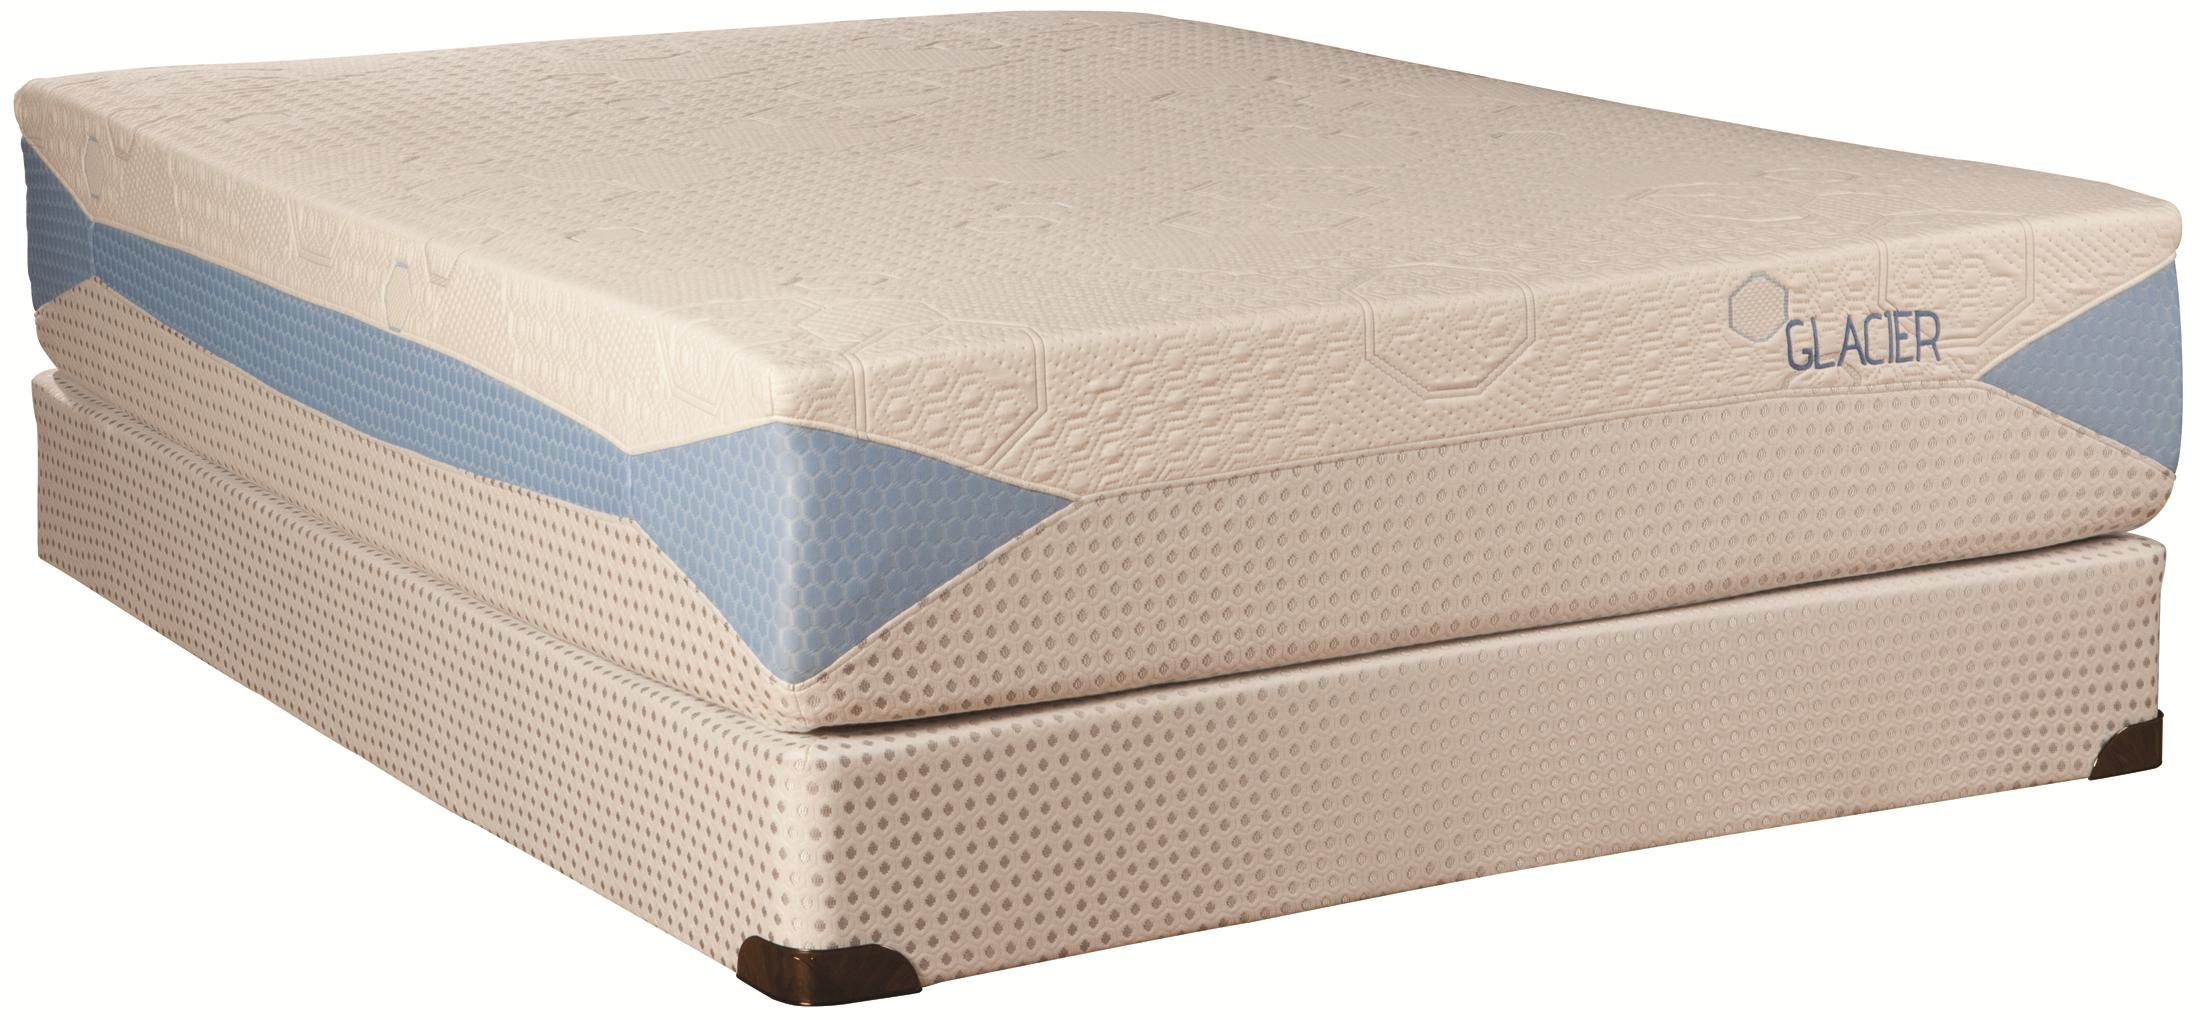 Kingsdown Blu-Tek Glacier Twin XL Memory Foam Mattress - Item Number: 1883TXL